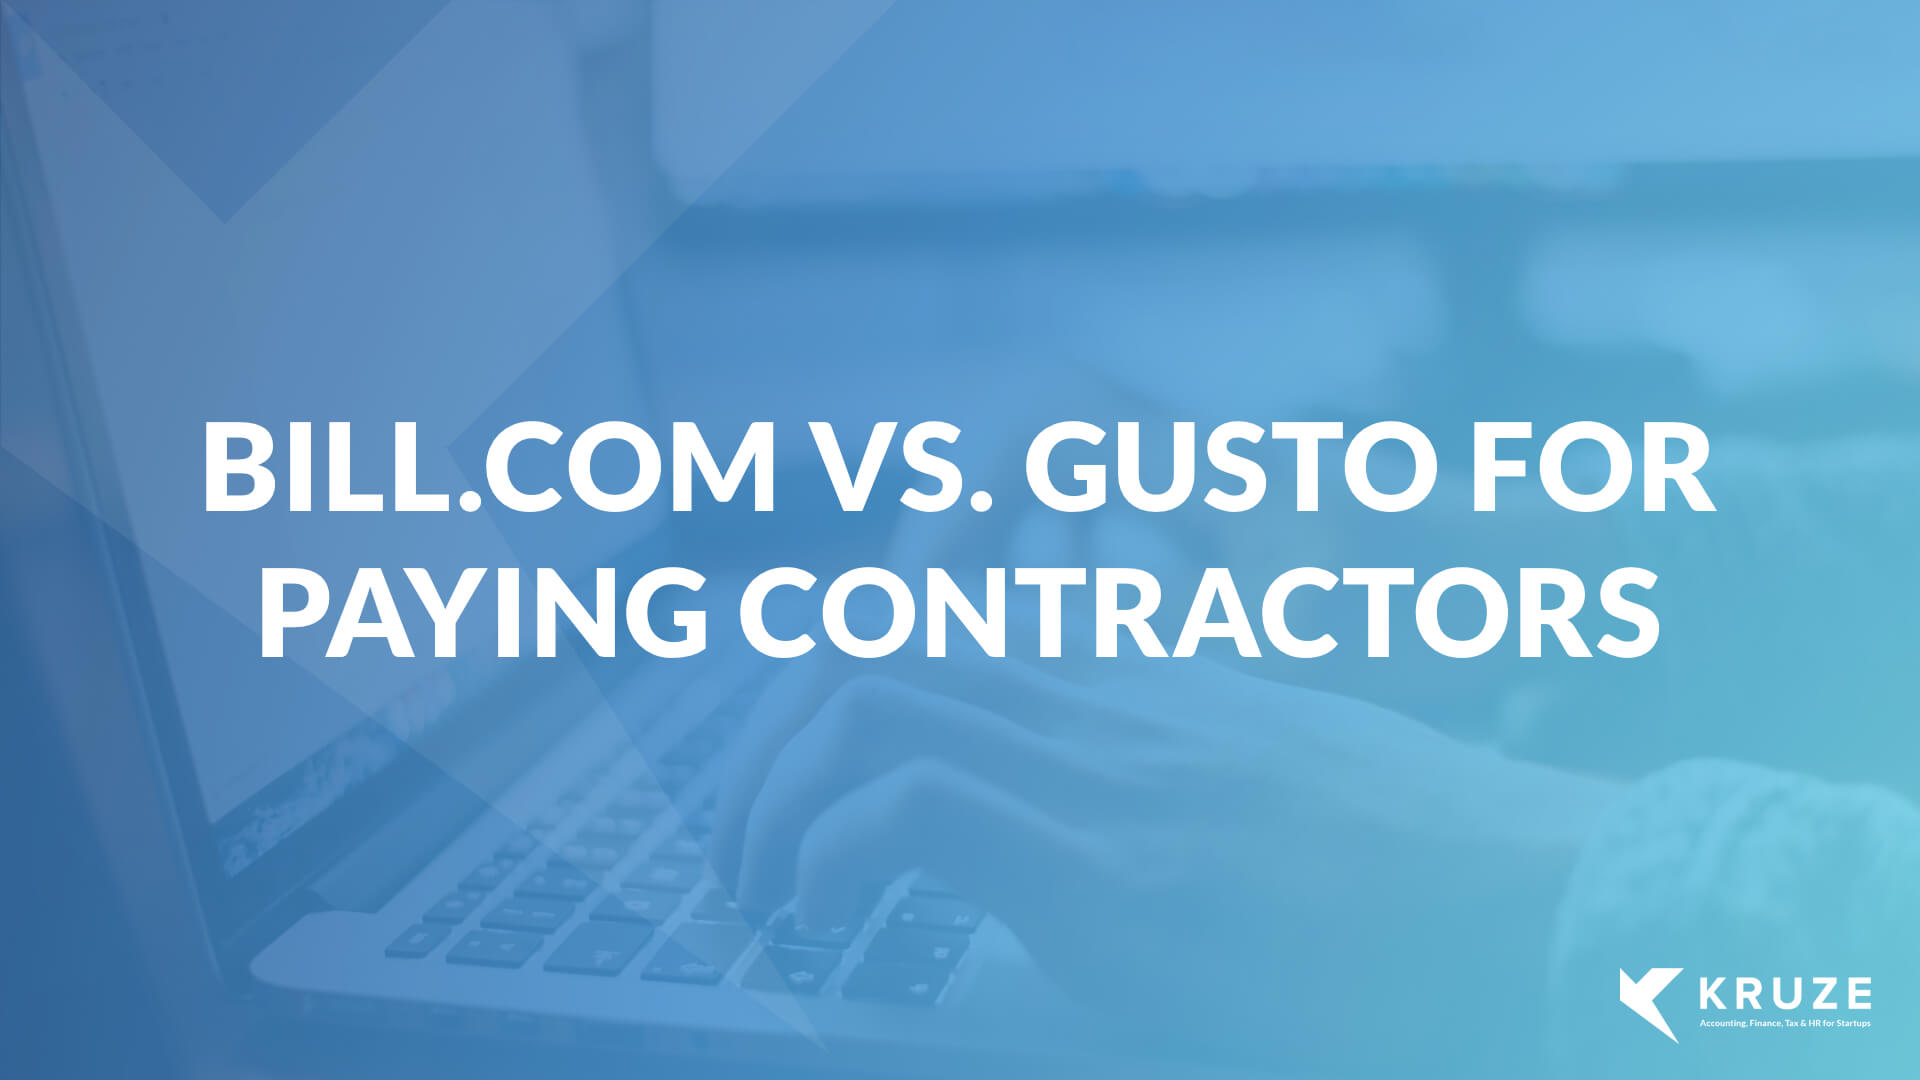 Bill.com vs Gusto for paying contractors